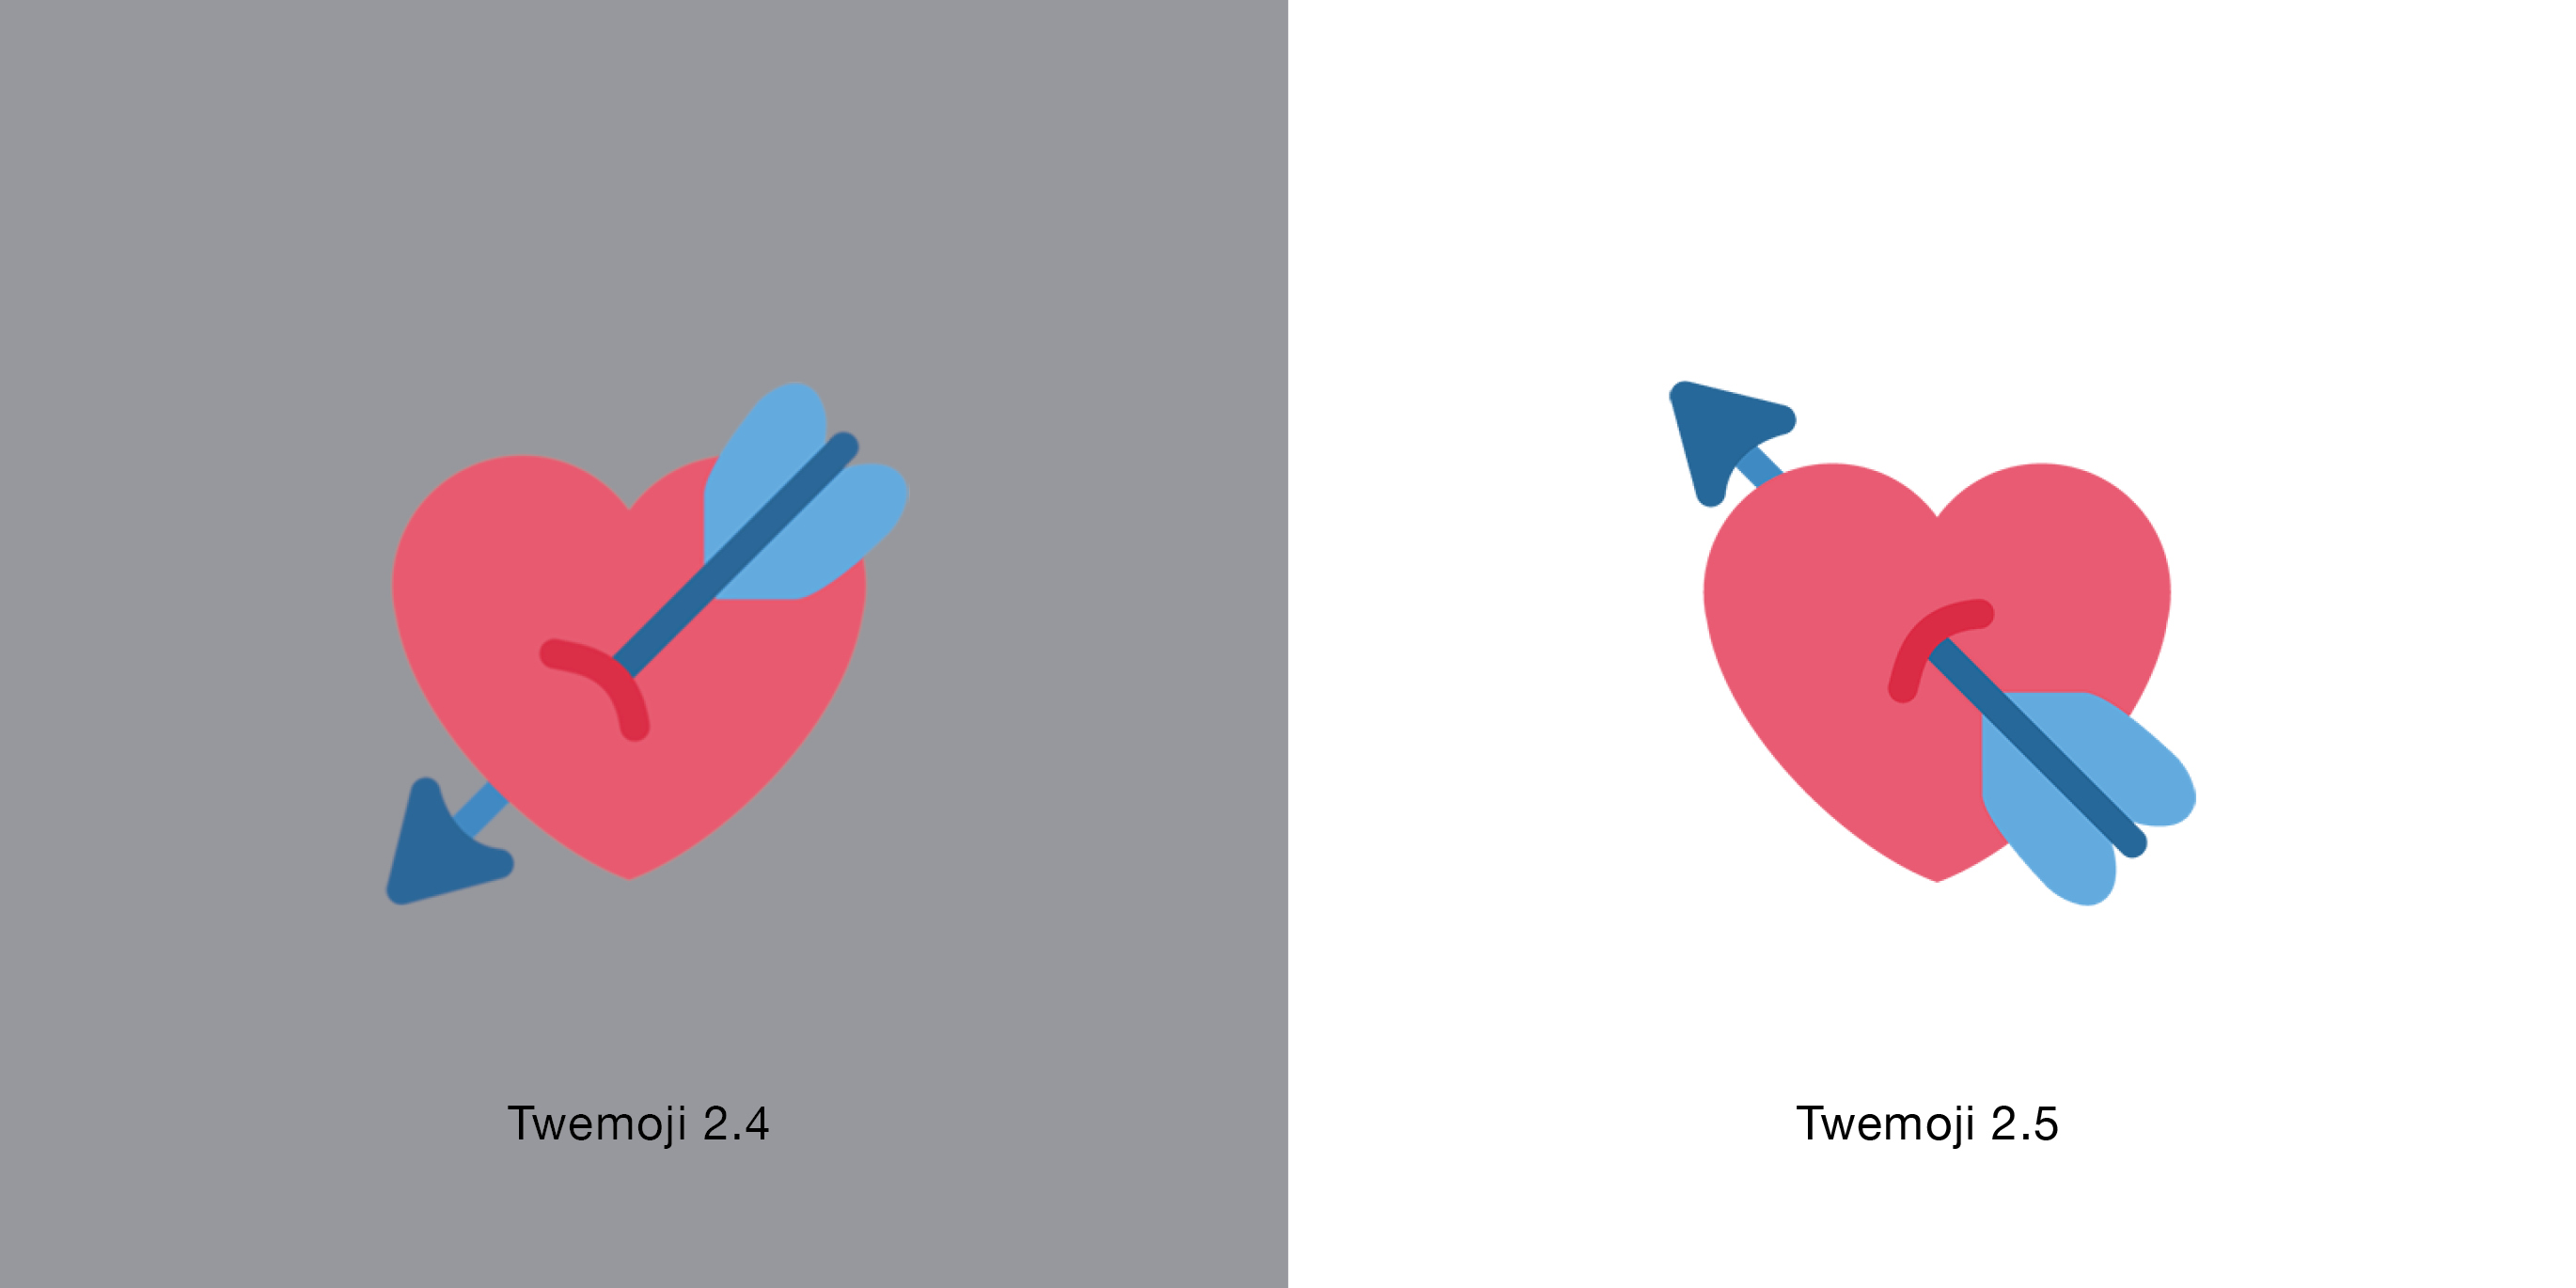 heart-with-arrow-2.5-emojipedia-twittertwemoji-emojipedia-1